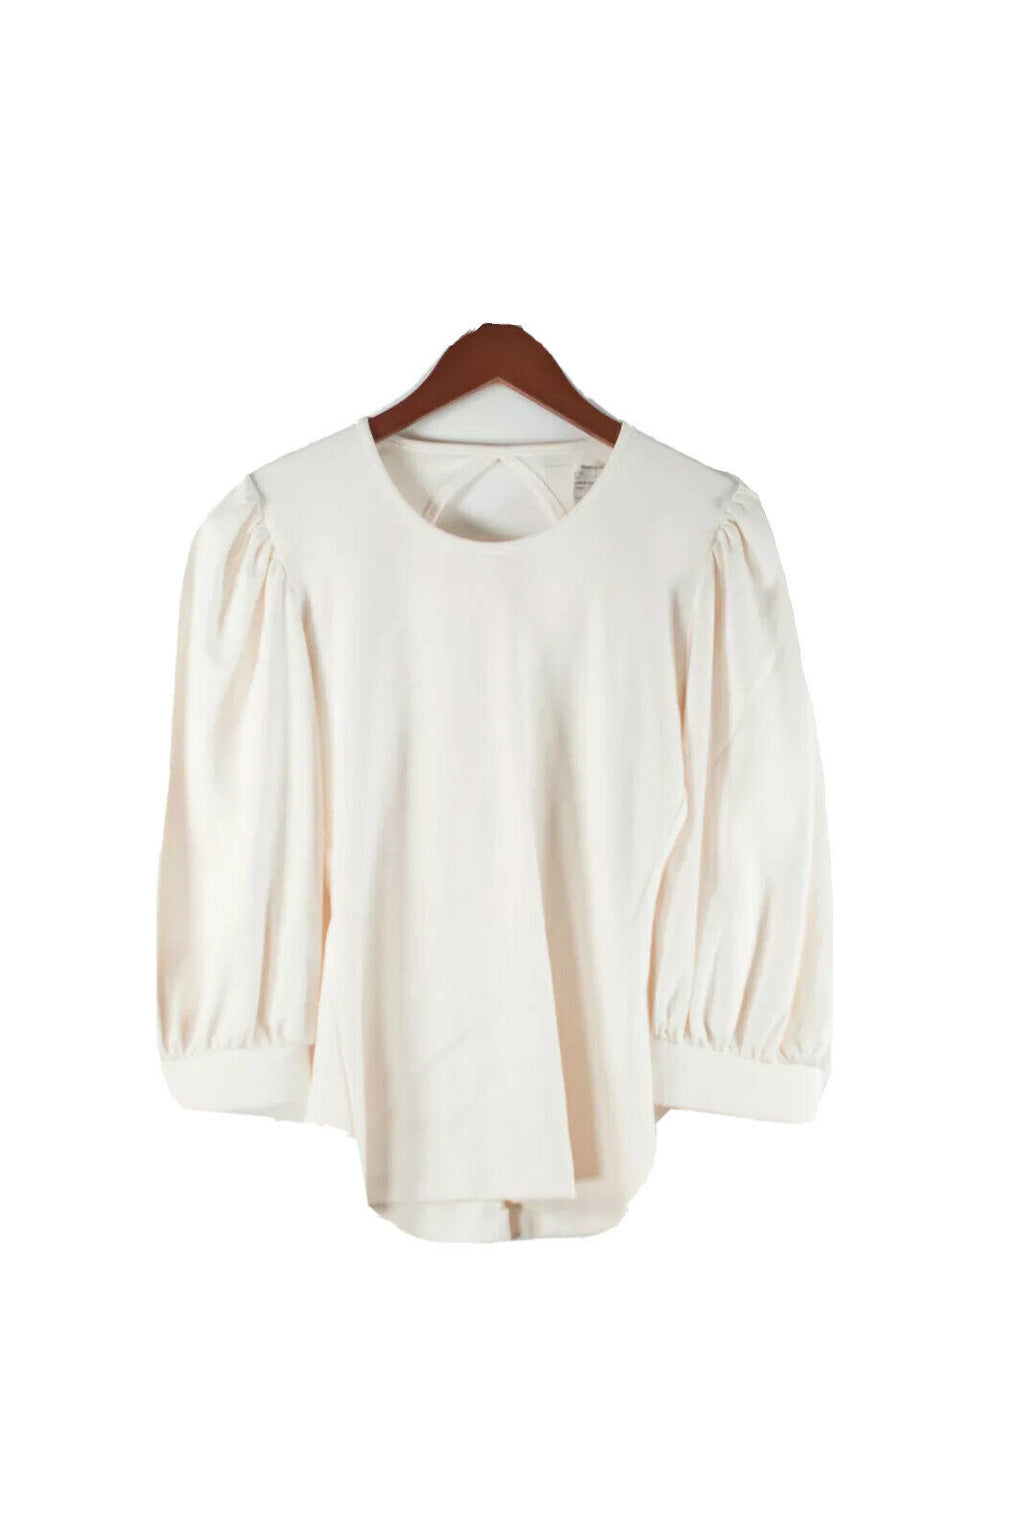 Amanda Uprichard Womens Small Ivory Tee Shirt Cotton Top NWT $200